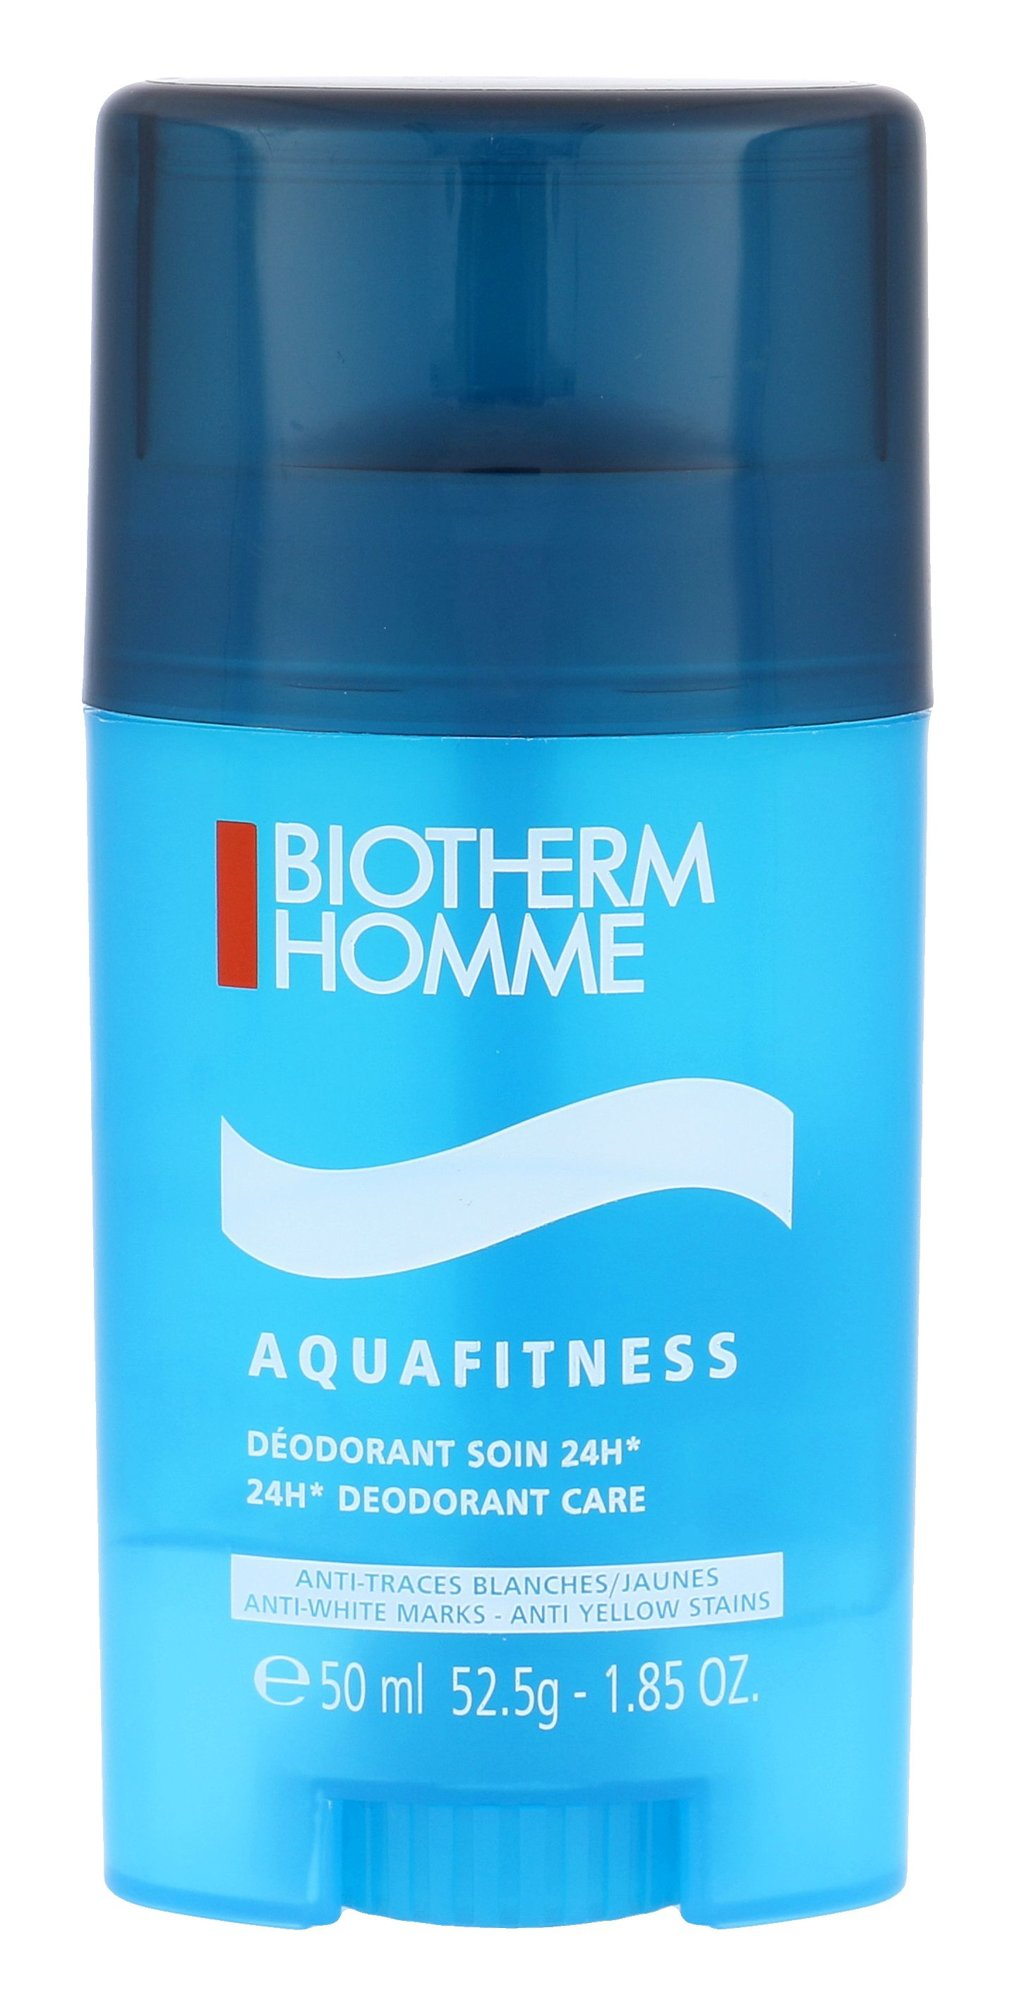 Biotherm Homme Aquafitness Cosmetic 50ml